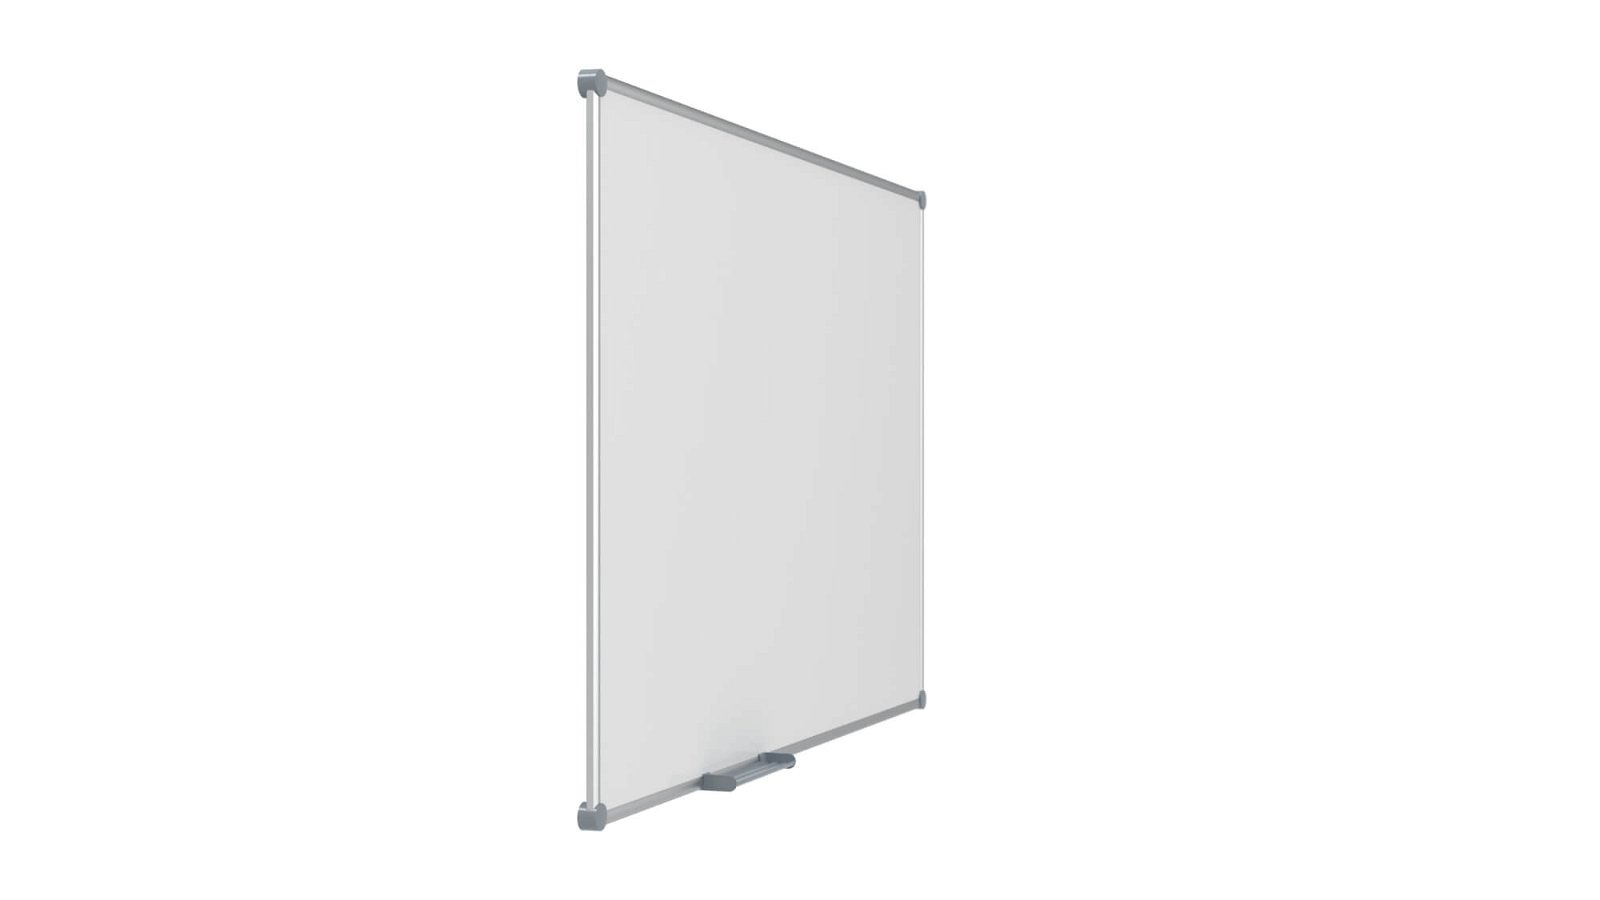 Whiteboard 2000 MAULpro, Emaille, 120x180 cm, grau